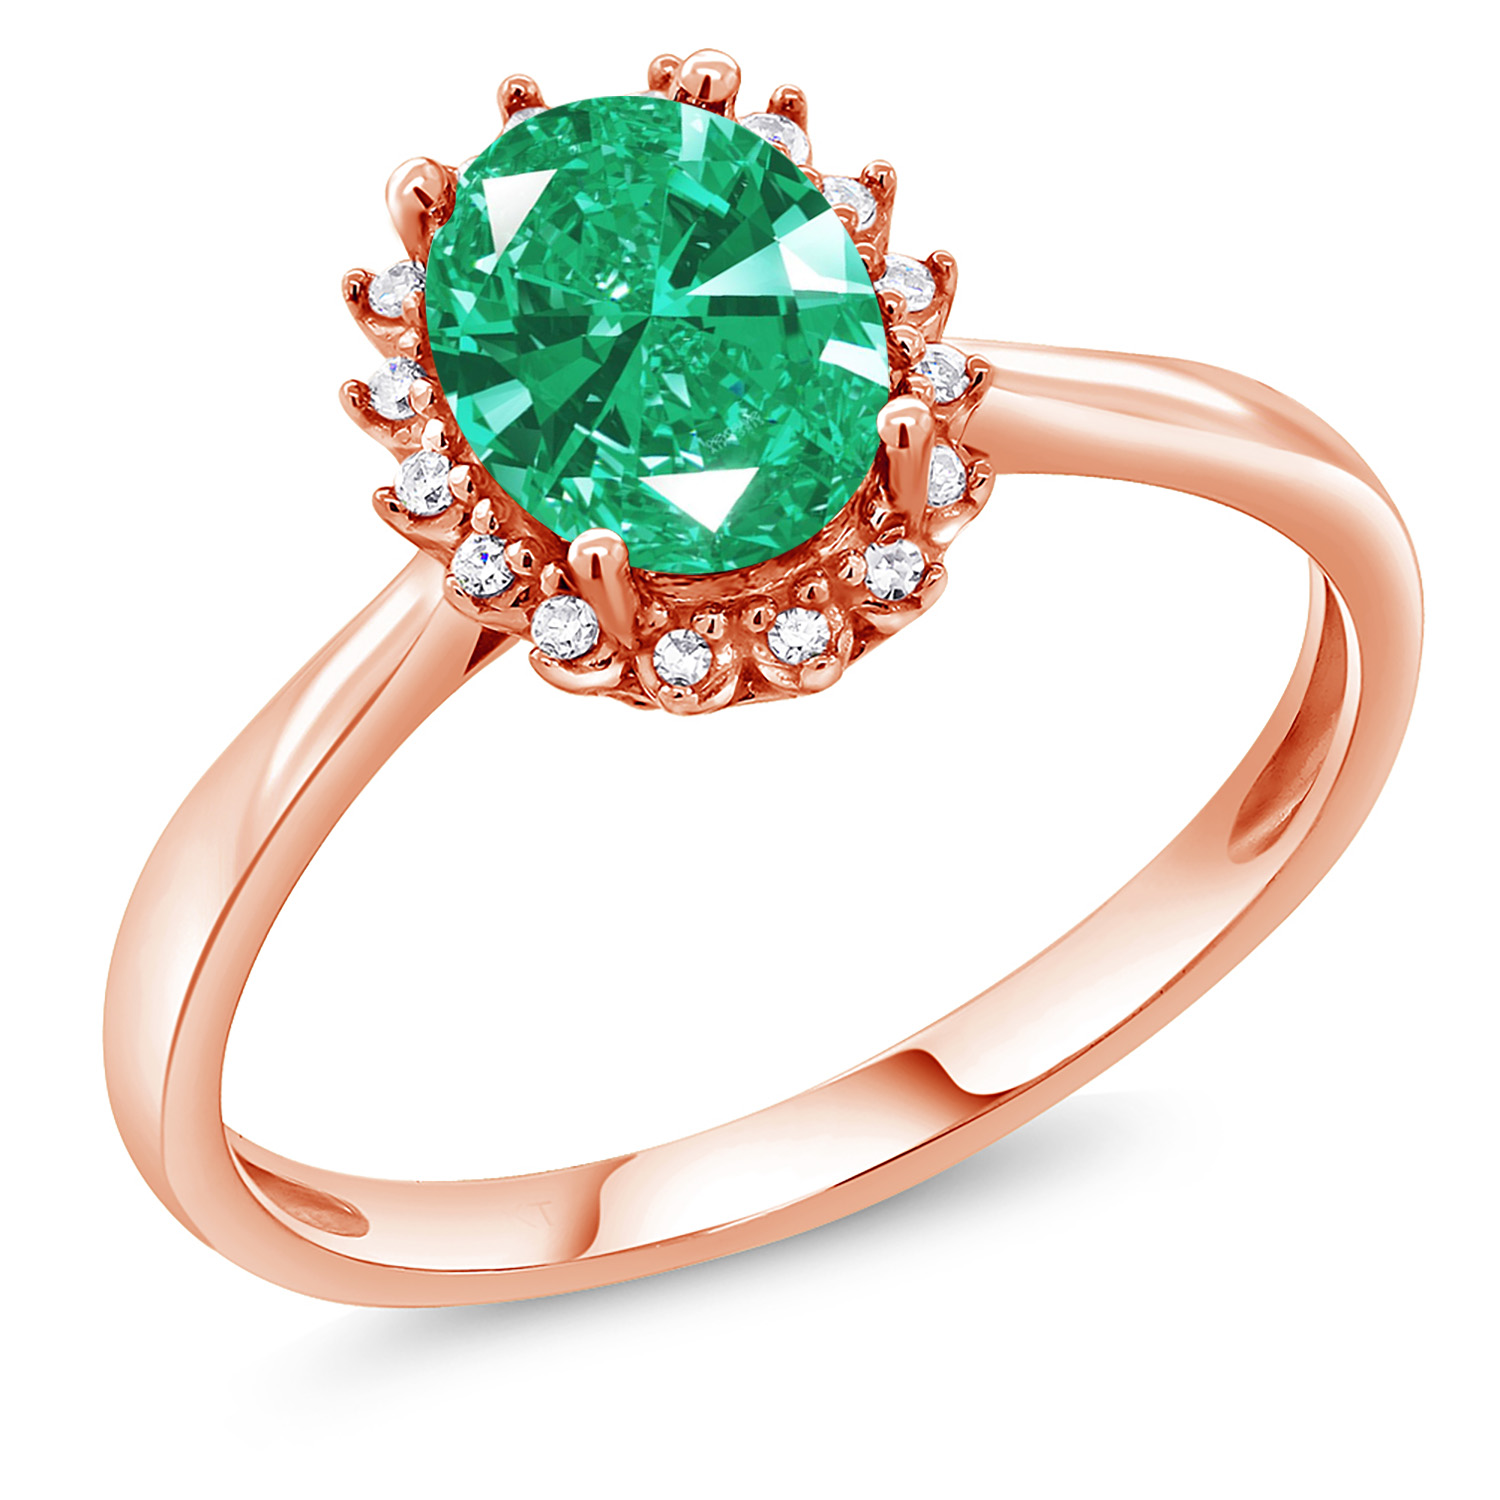 cd83ad788 10K Rose Gold Fashion Right-Hand Ring Set with Green Zirconia from Swarovski